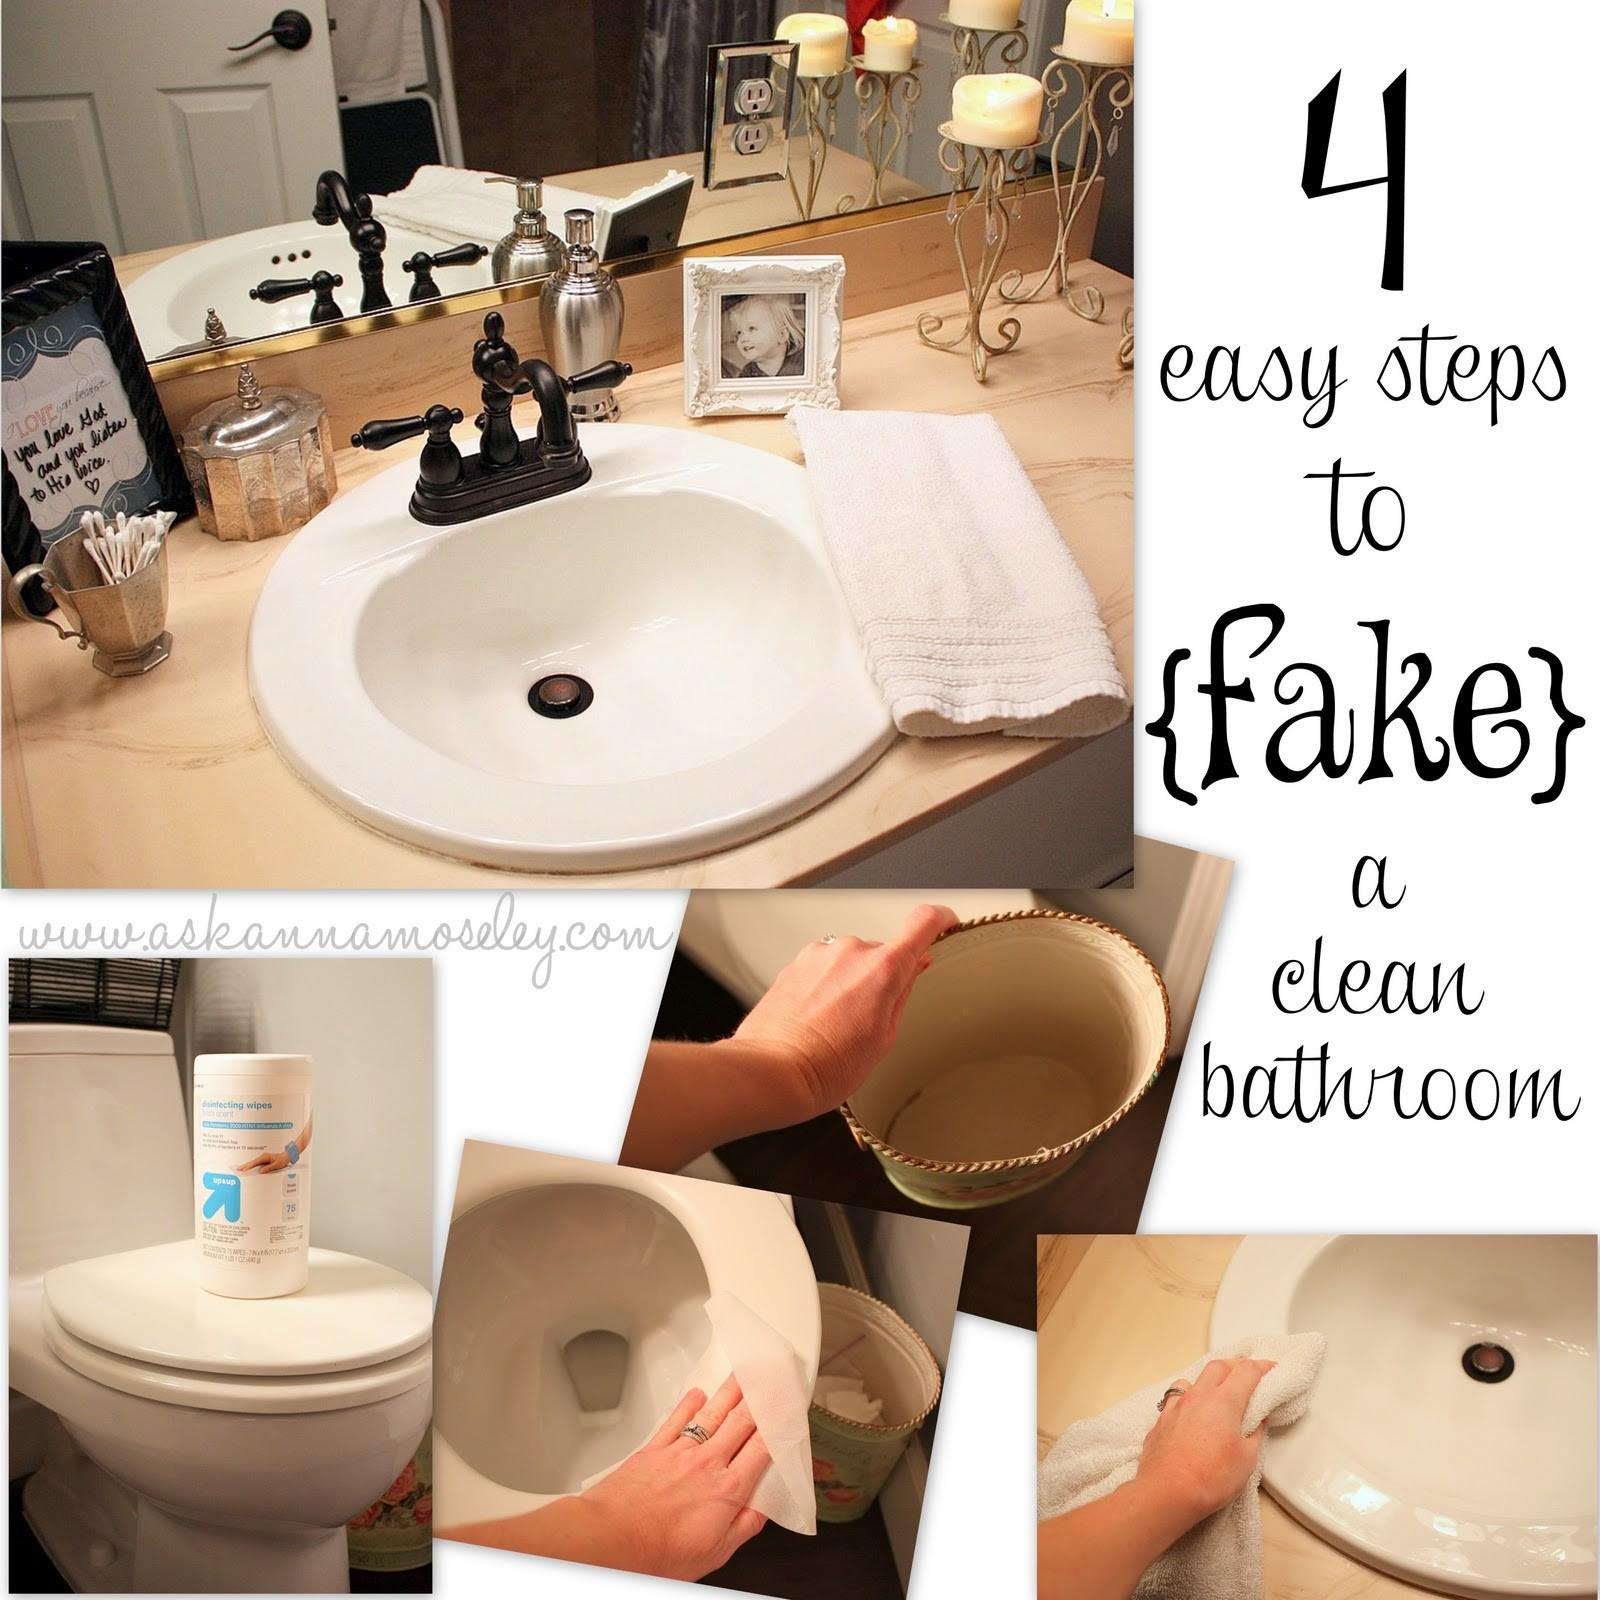 Best Bathroom Cleaning Tips Photograpy